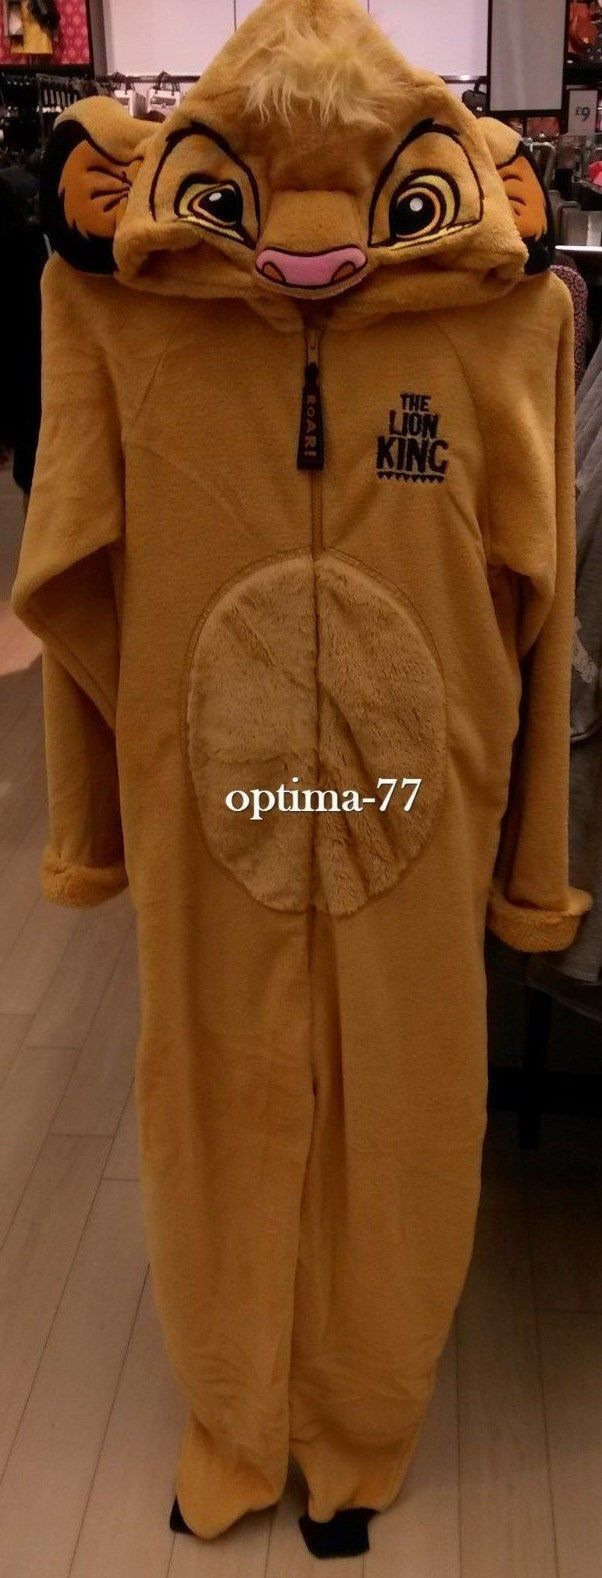 Ladies disney simba the lion king onesie #adult #all-in-one pyjamas #dressing up,  View more on the LINK: http://www.zeppy.io/product/gb/2/252586179911/